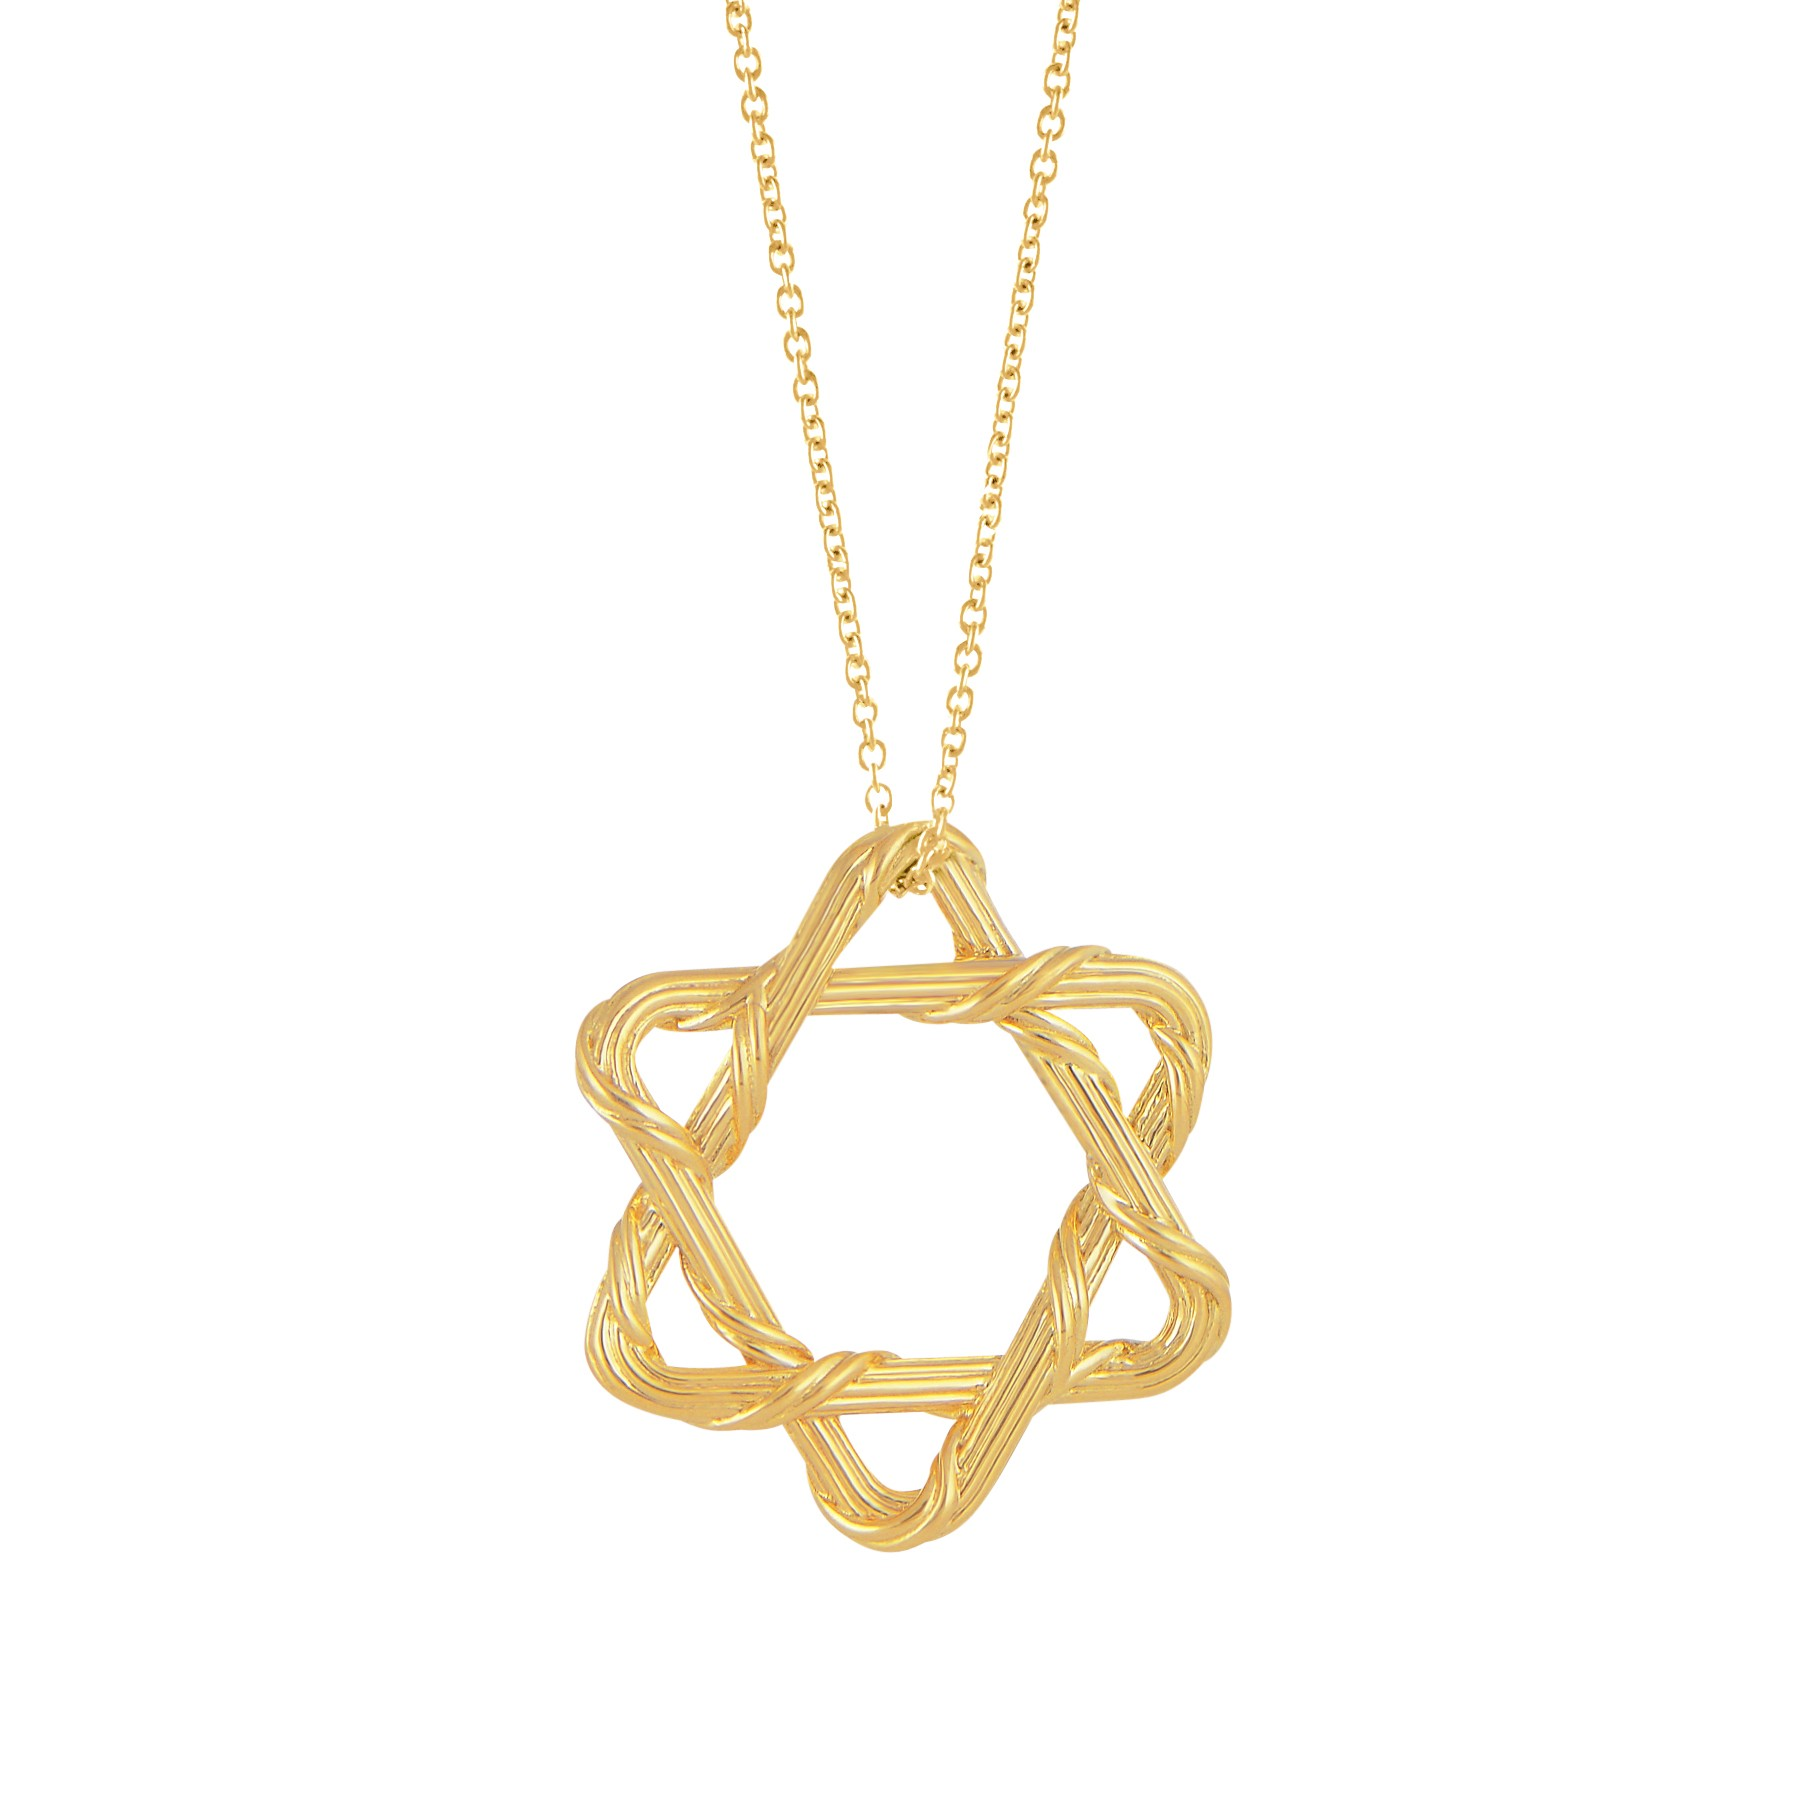 Heritage Star of David Necklace in 18K yellow gold